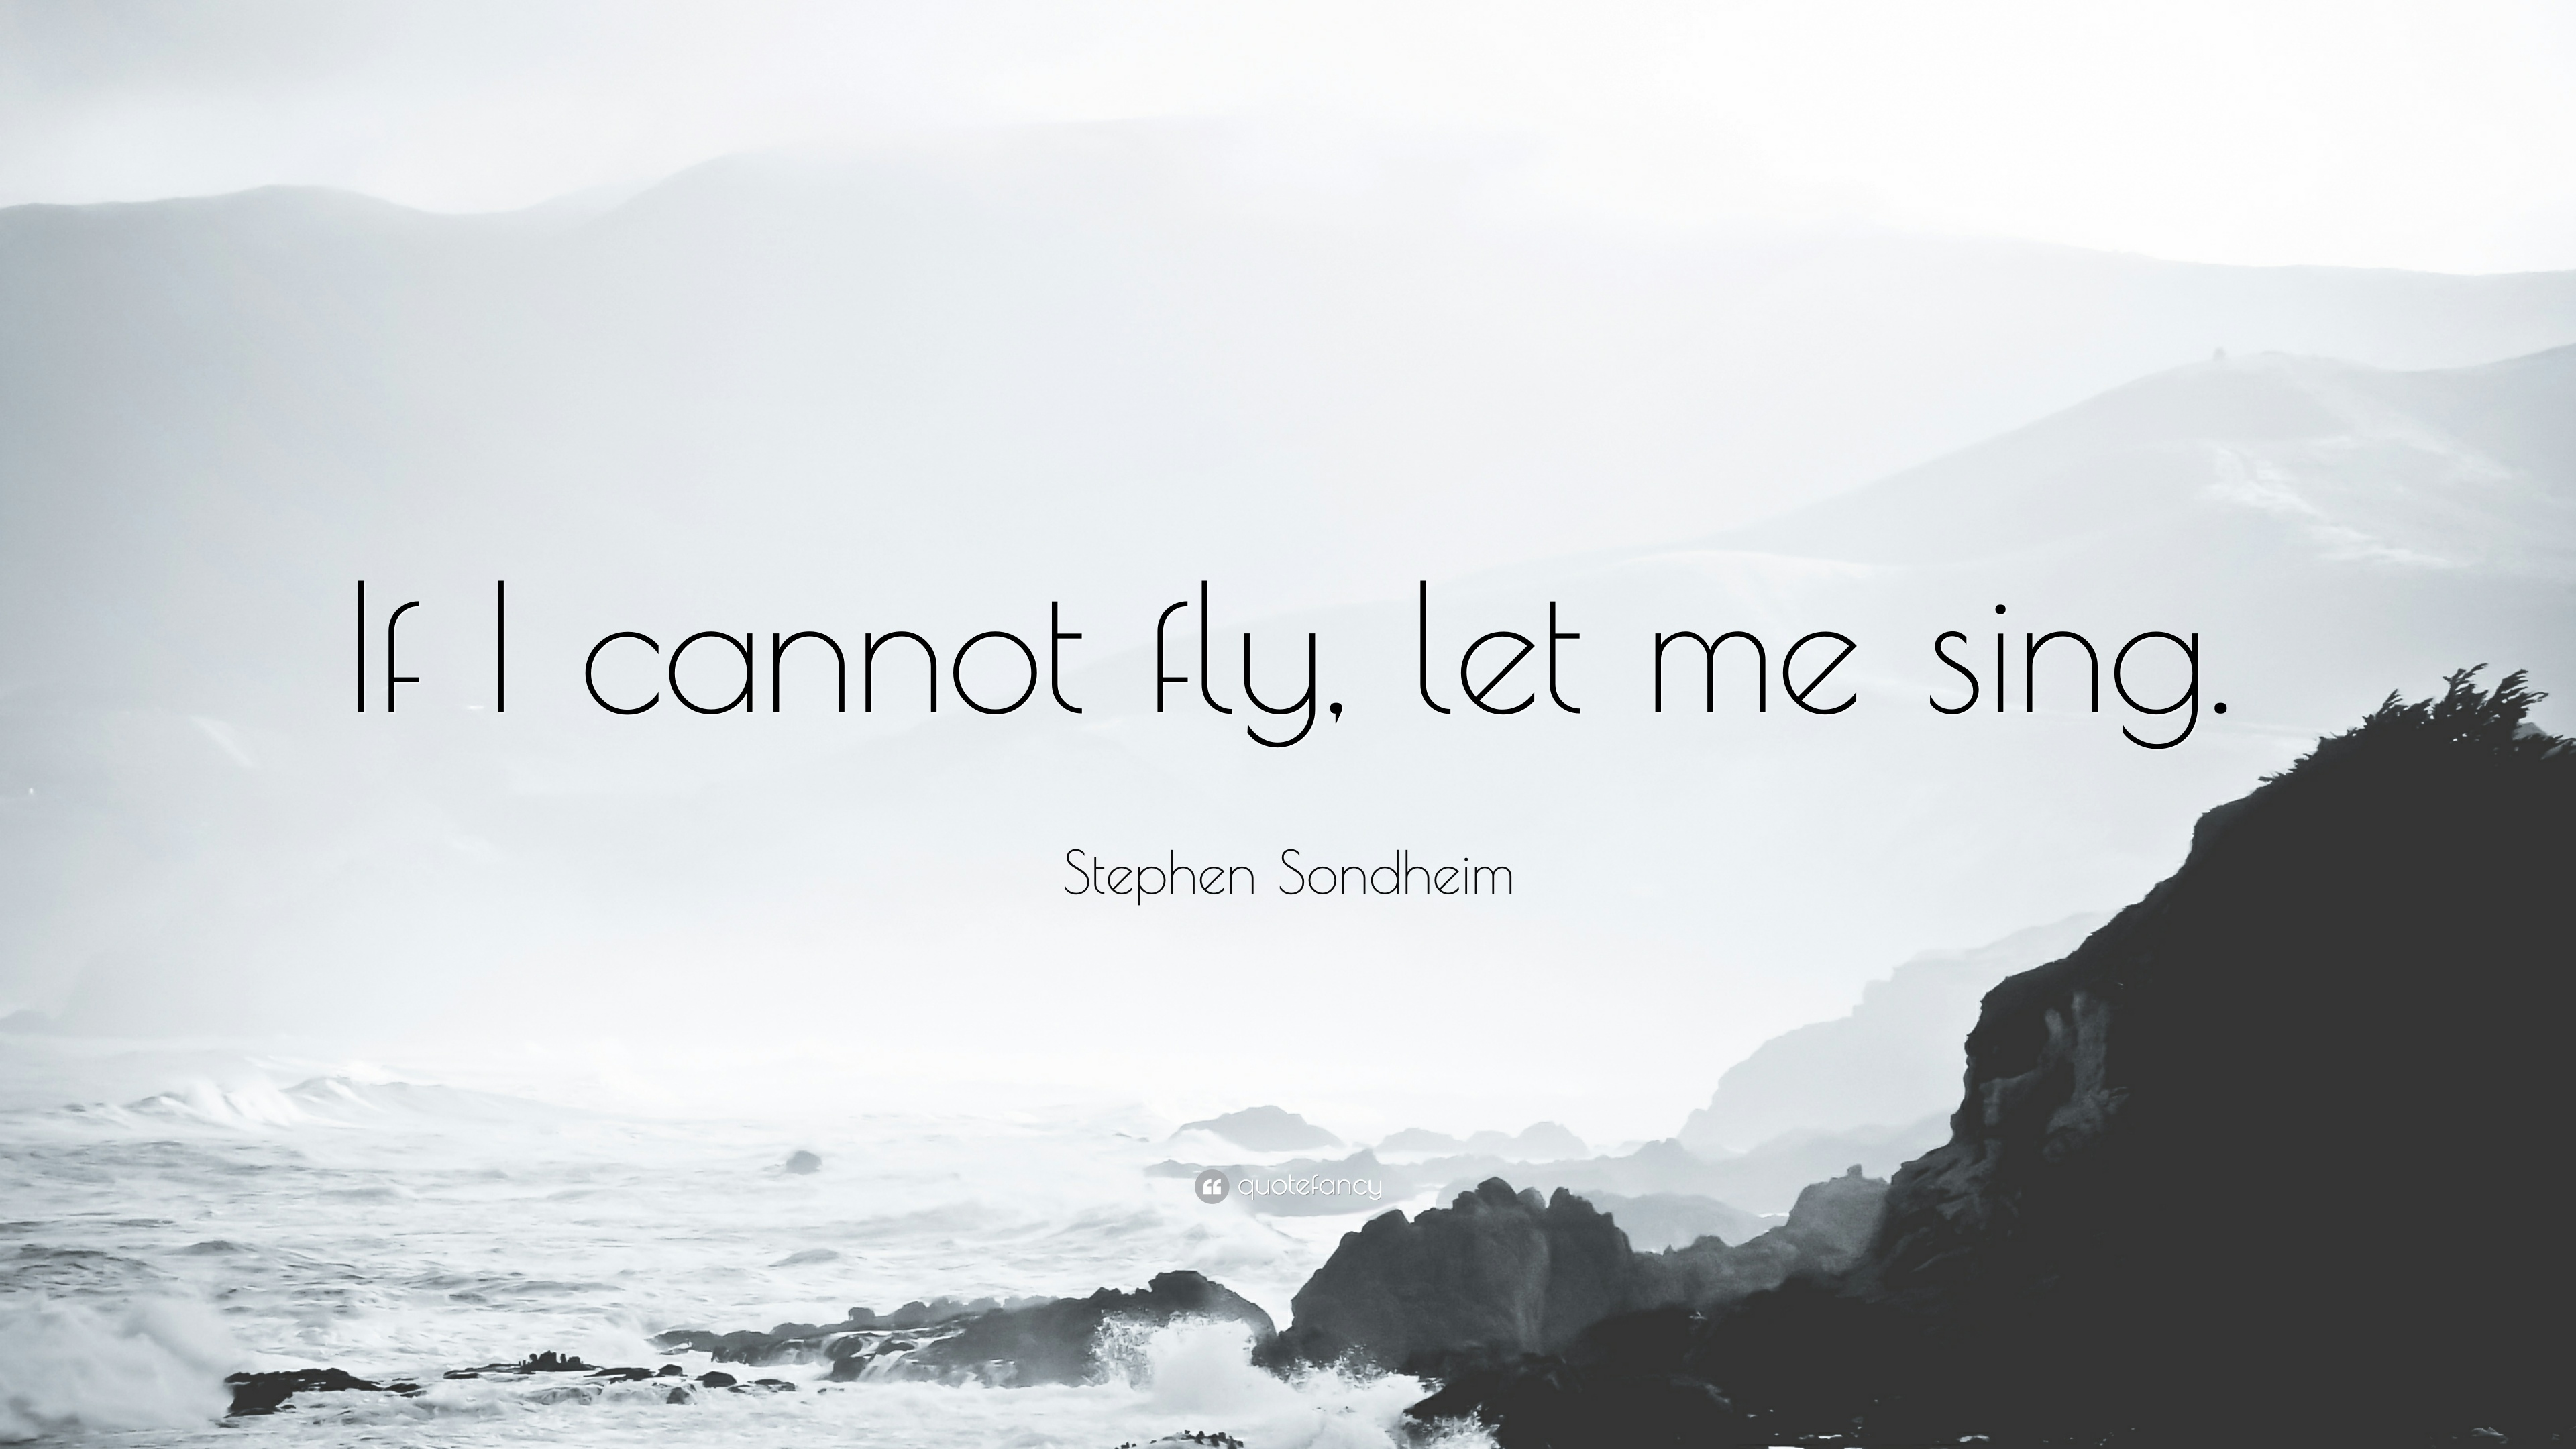 Stephen Sondheim Quote: U201cIf I Cannot Fly, Let Me Sing.u201d